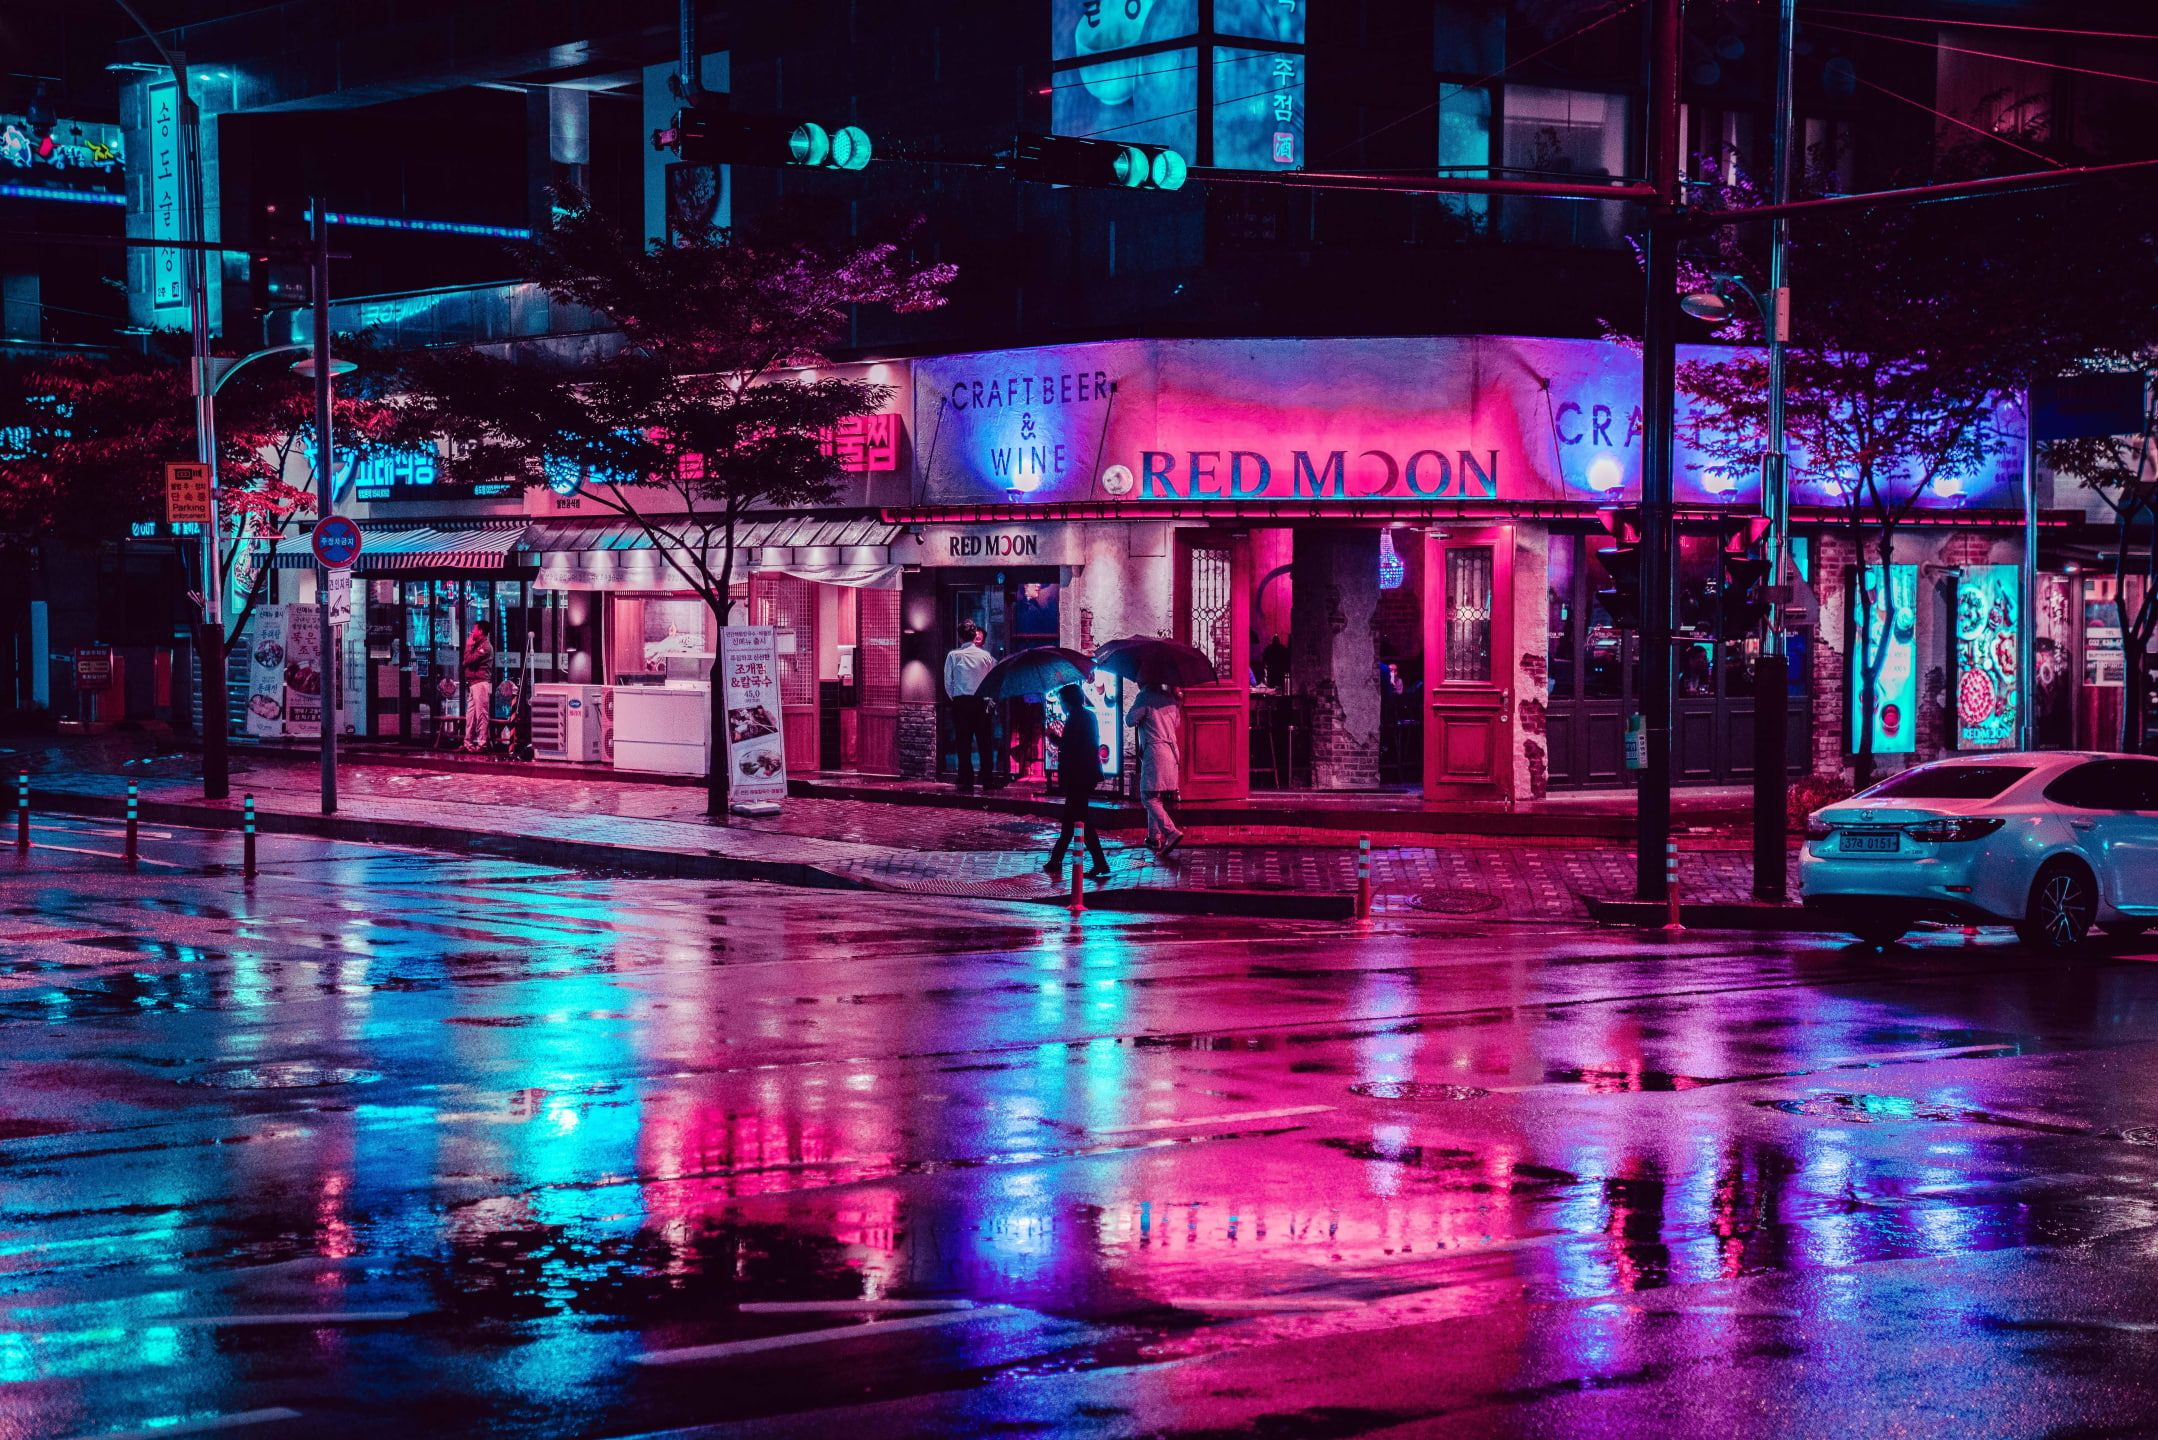 Photography City City Lights Street Night Neon Lights Urban 1080p Wallpaper Hdwallpaper Desk In 2020 Neon Light Wallpaper City Lights Wallpaper Neon Wallpaper